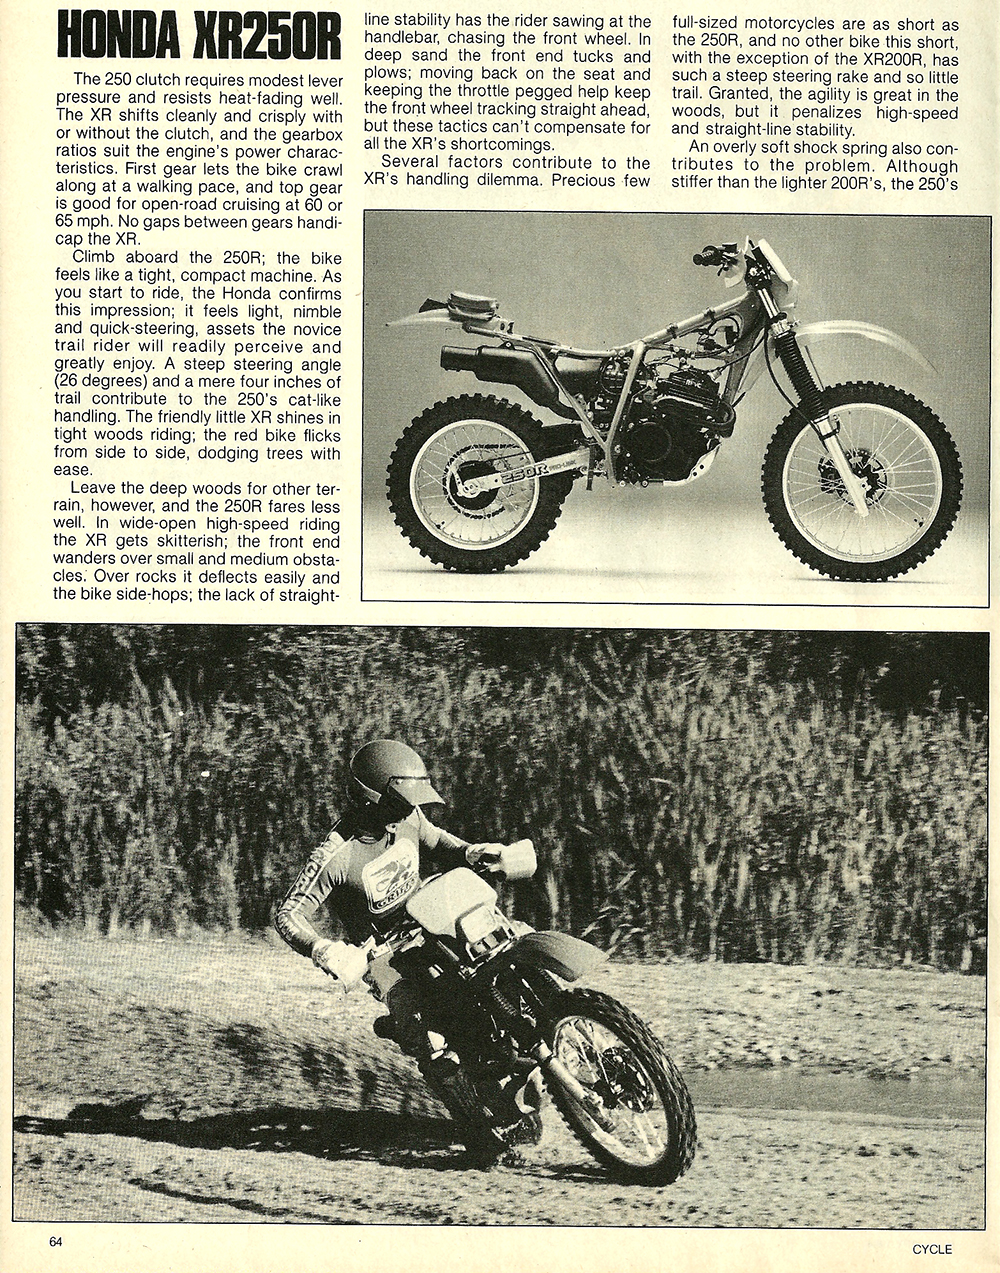 1984 Honda XR250R road test 5.jpg